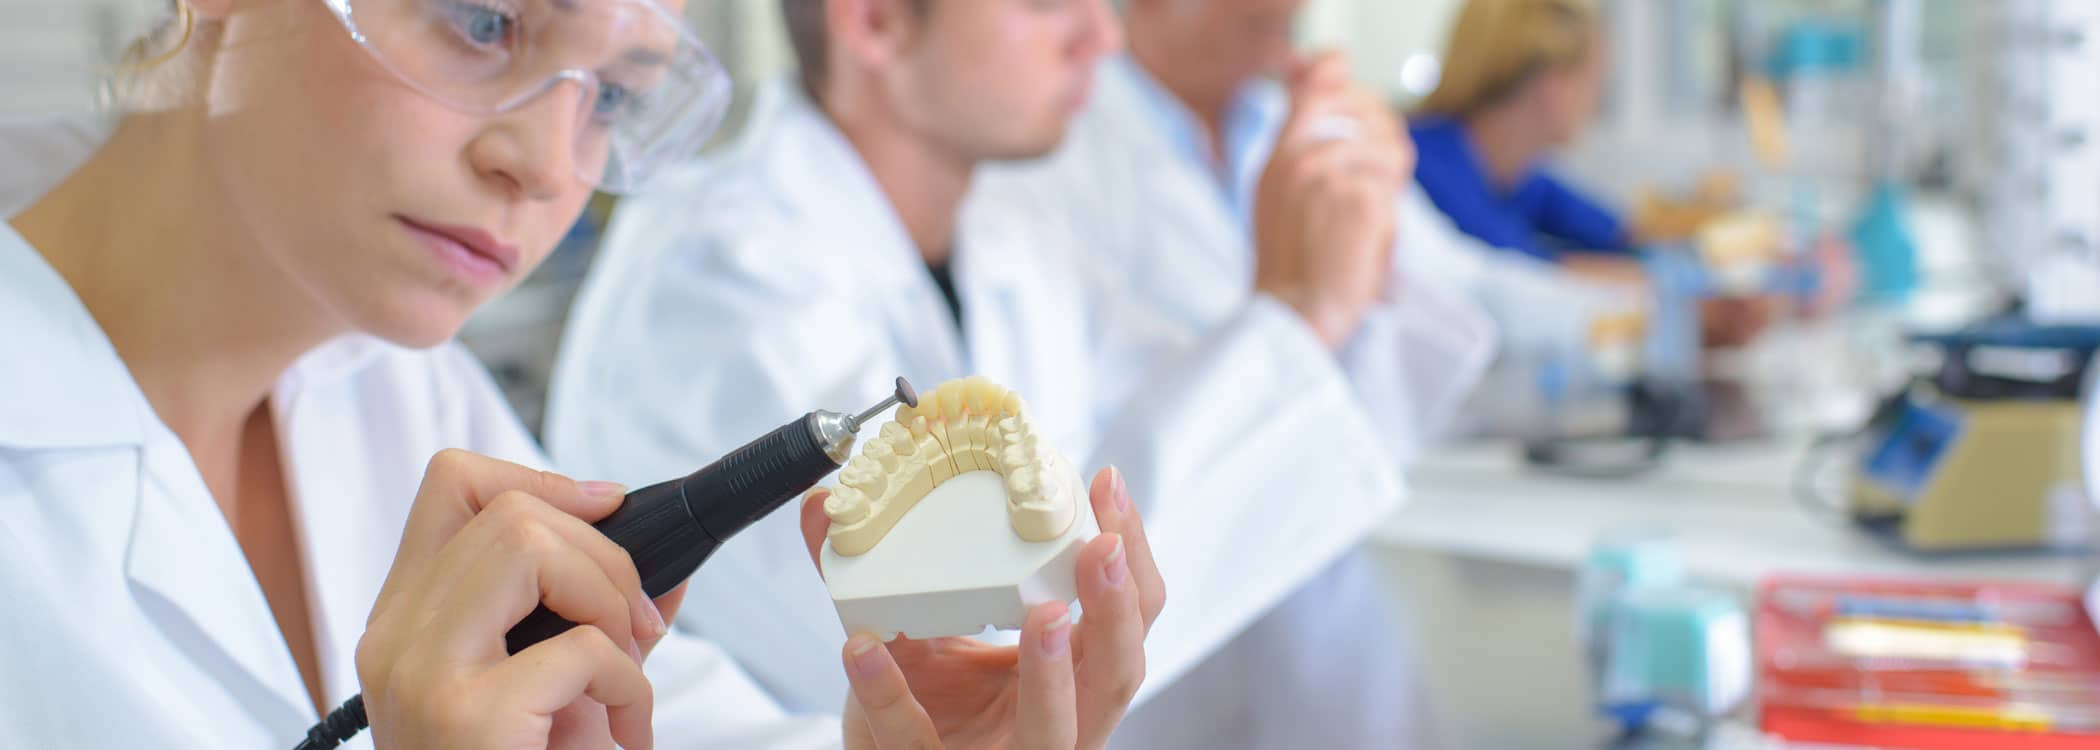 Image of professionals making dentures.